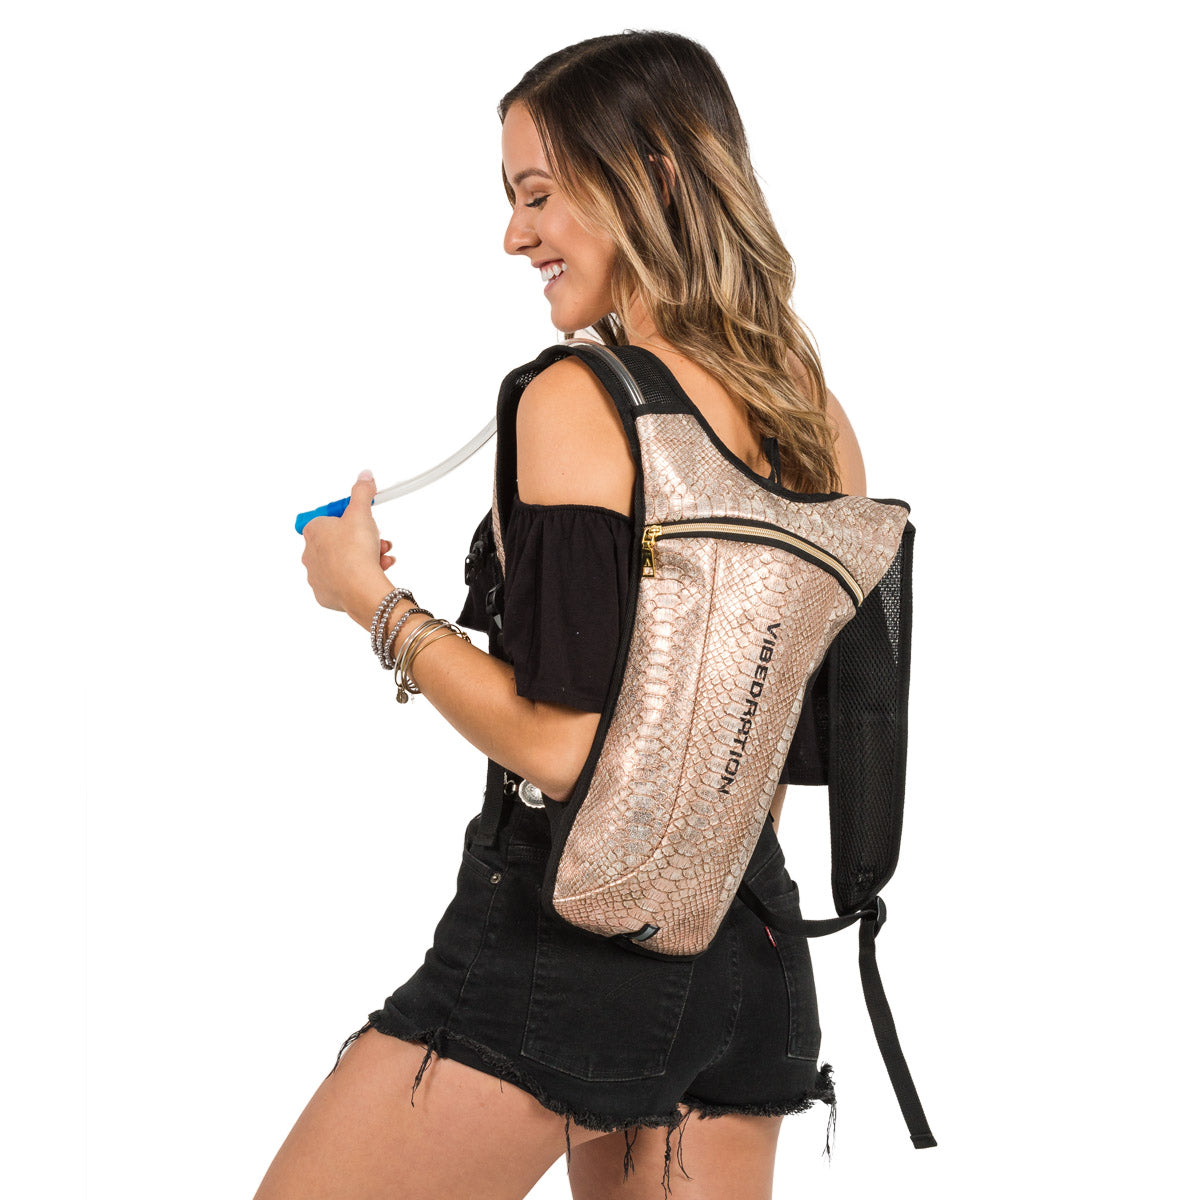 Rose Gold Two Liter Hydration Pack for Music Festivals